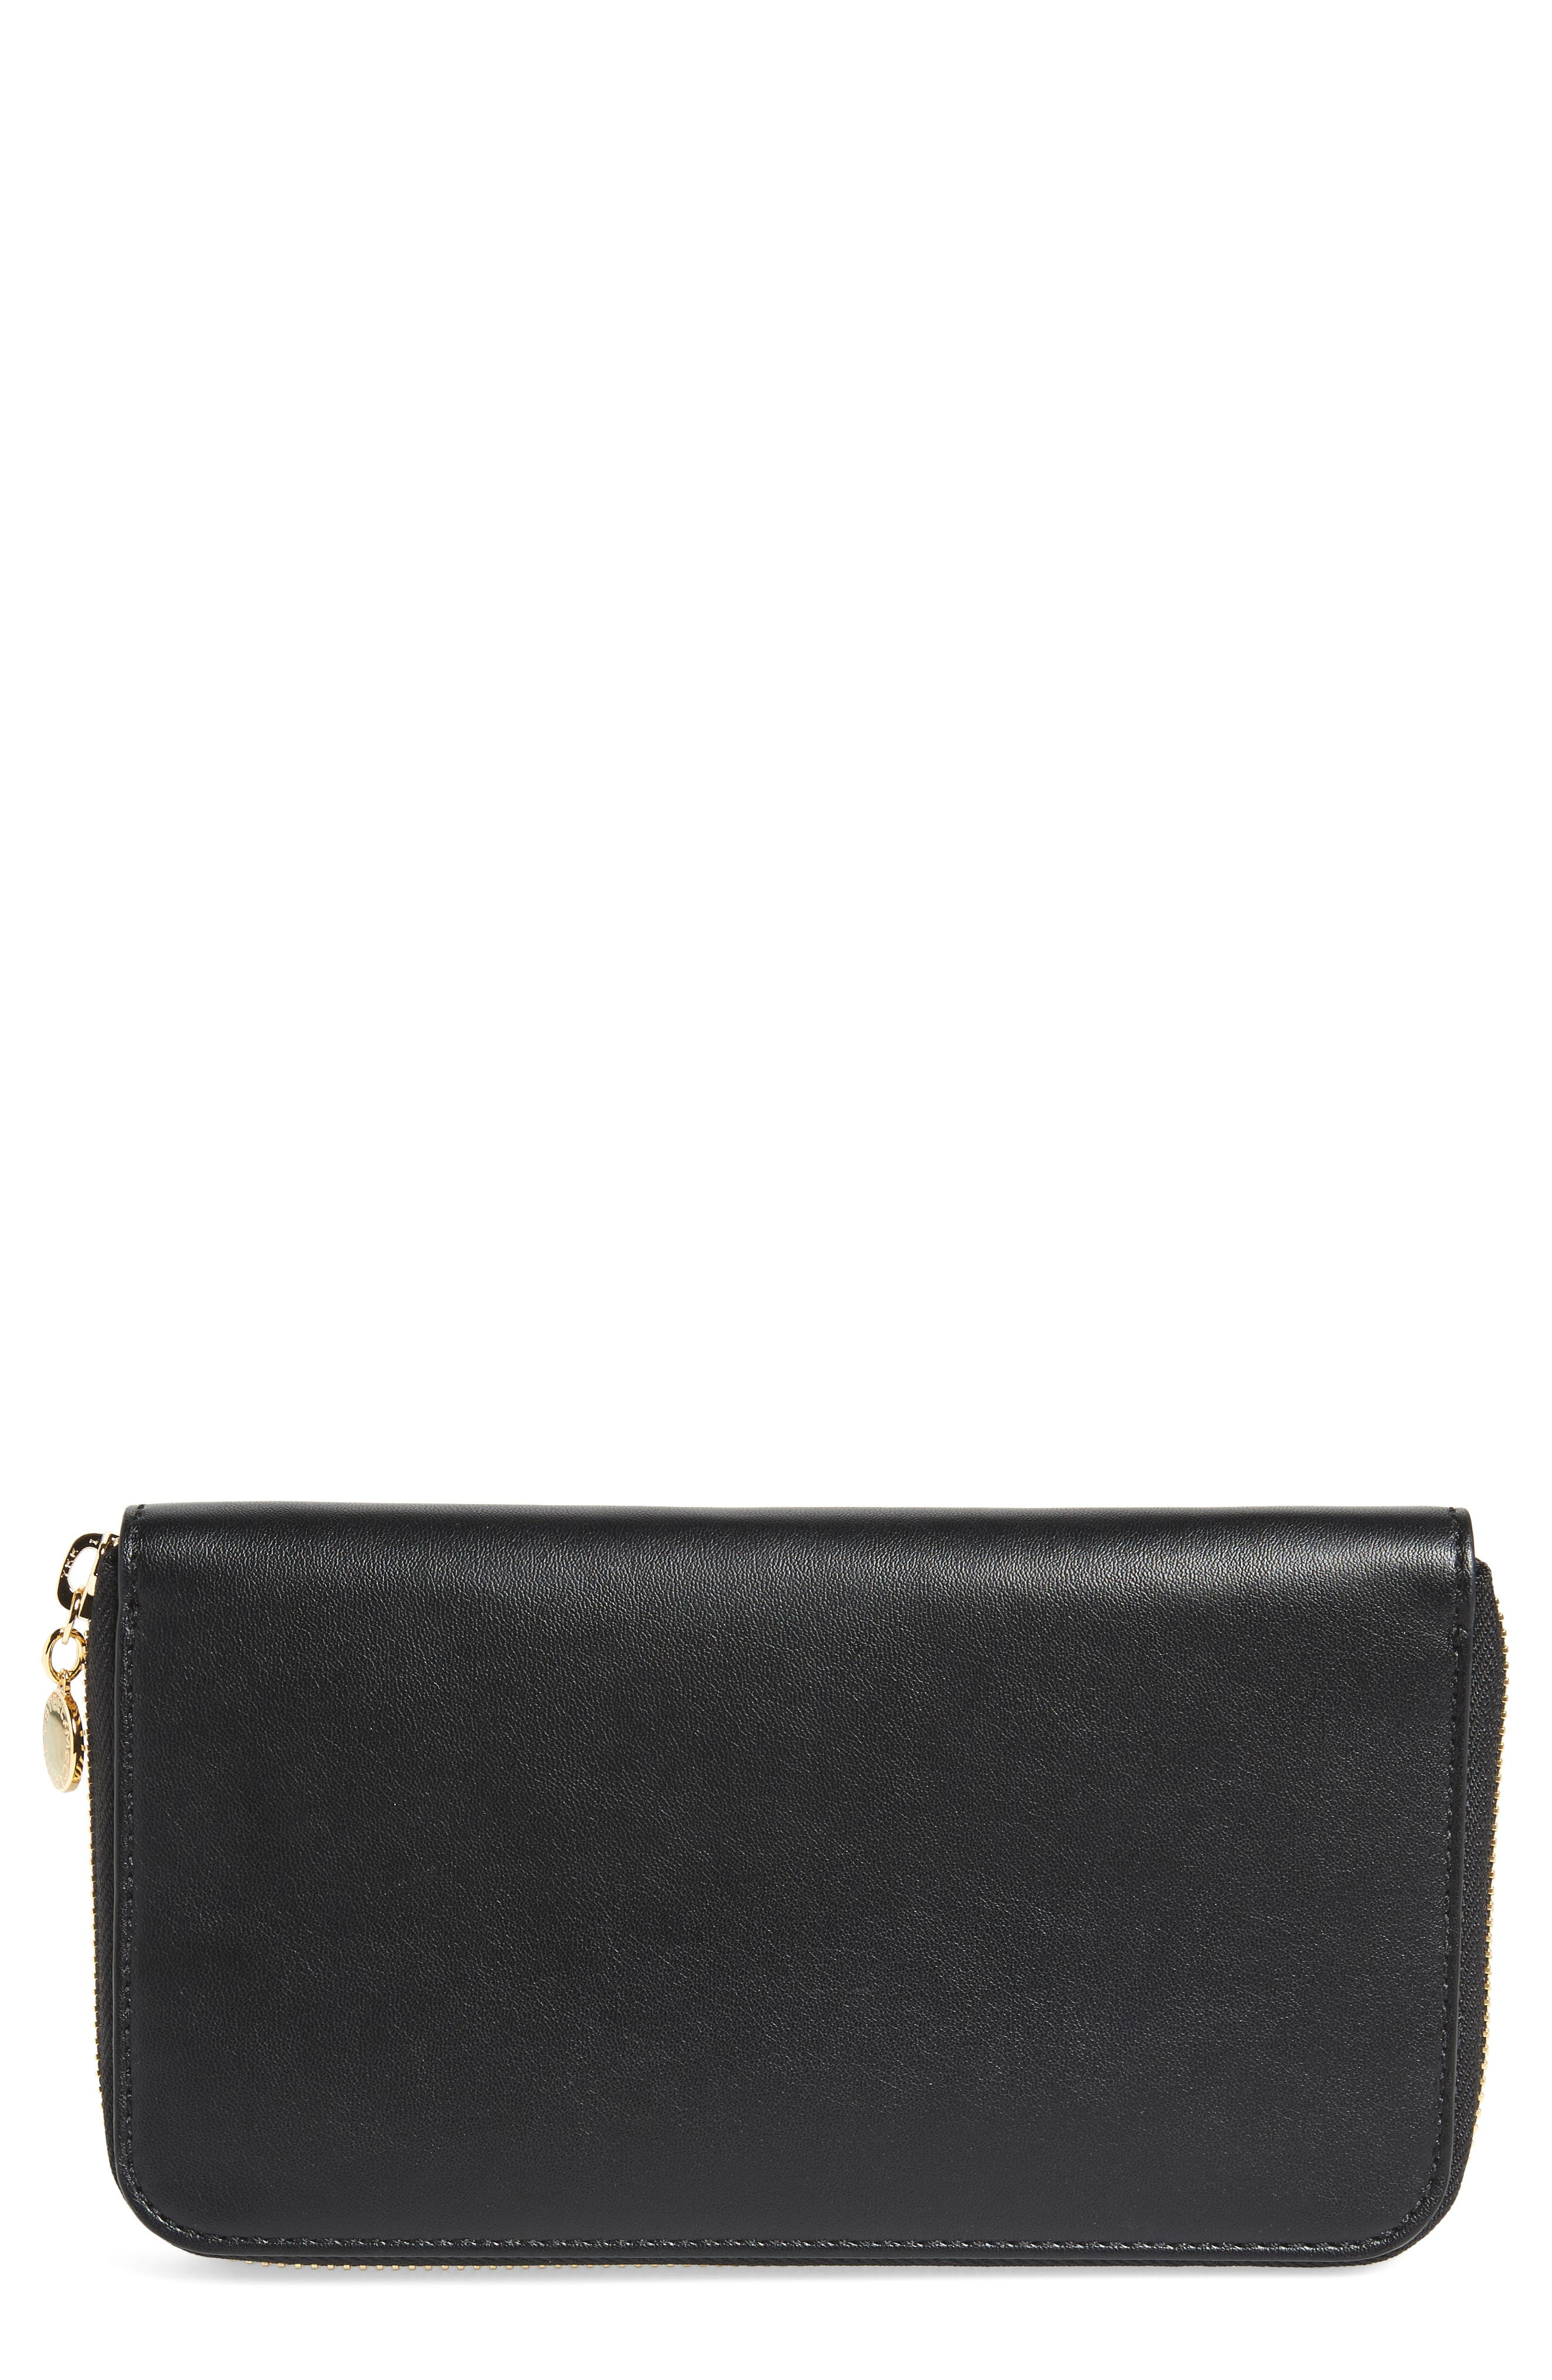 Stella McCartney Alter Nappa Perforated Logo Faux Leather Wallet